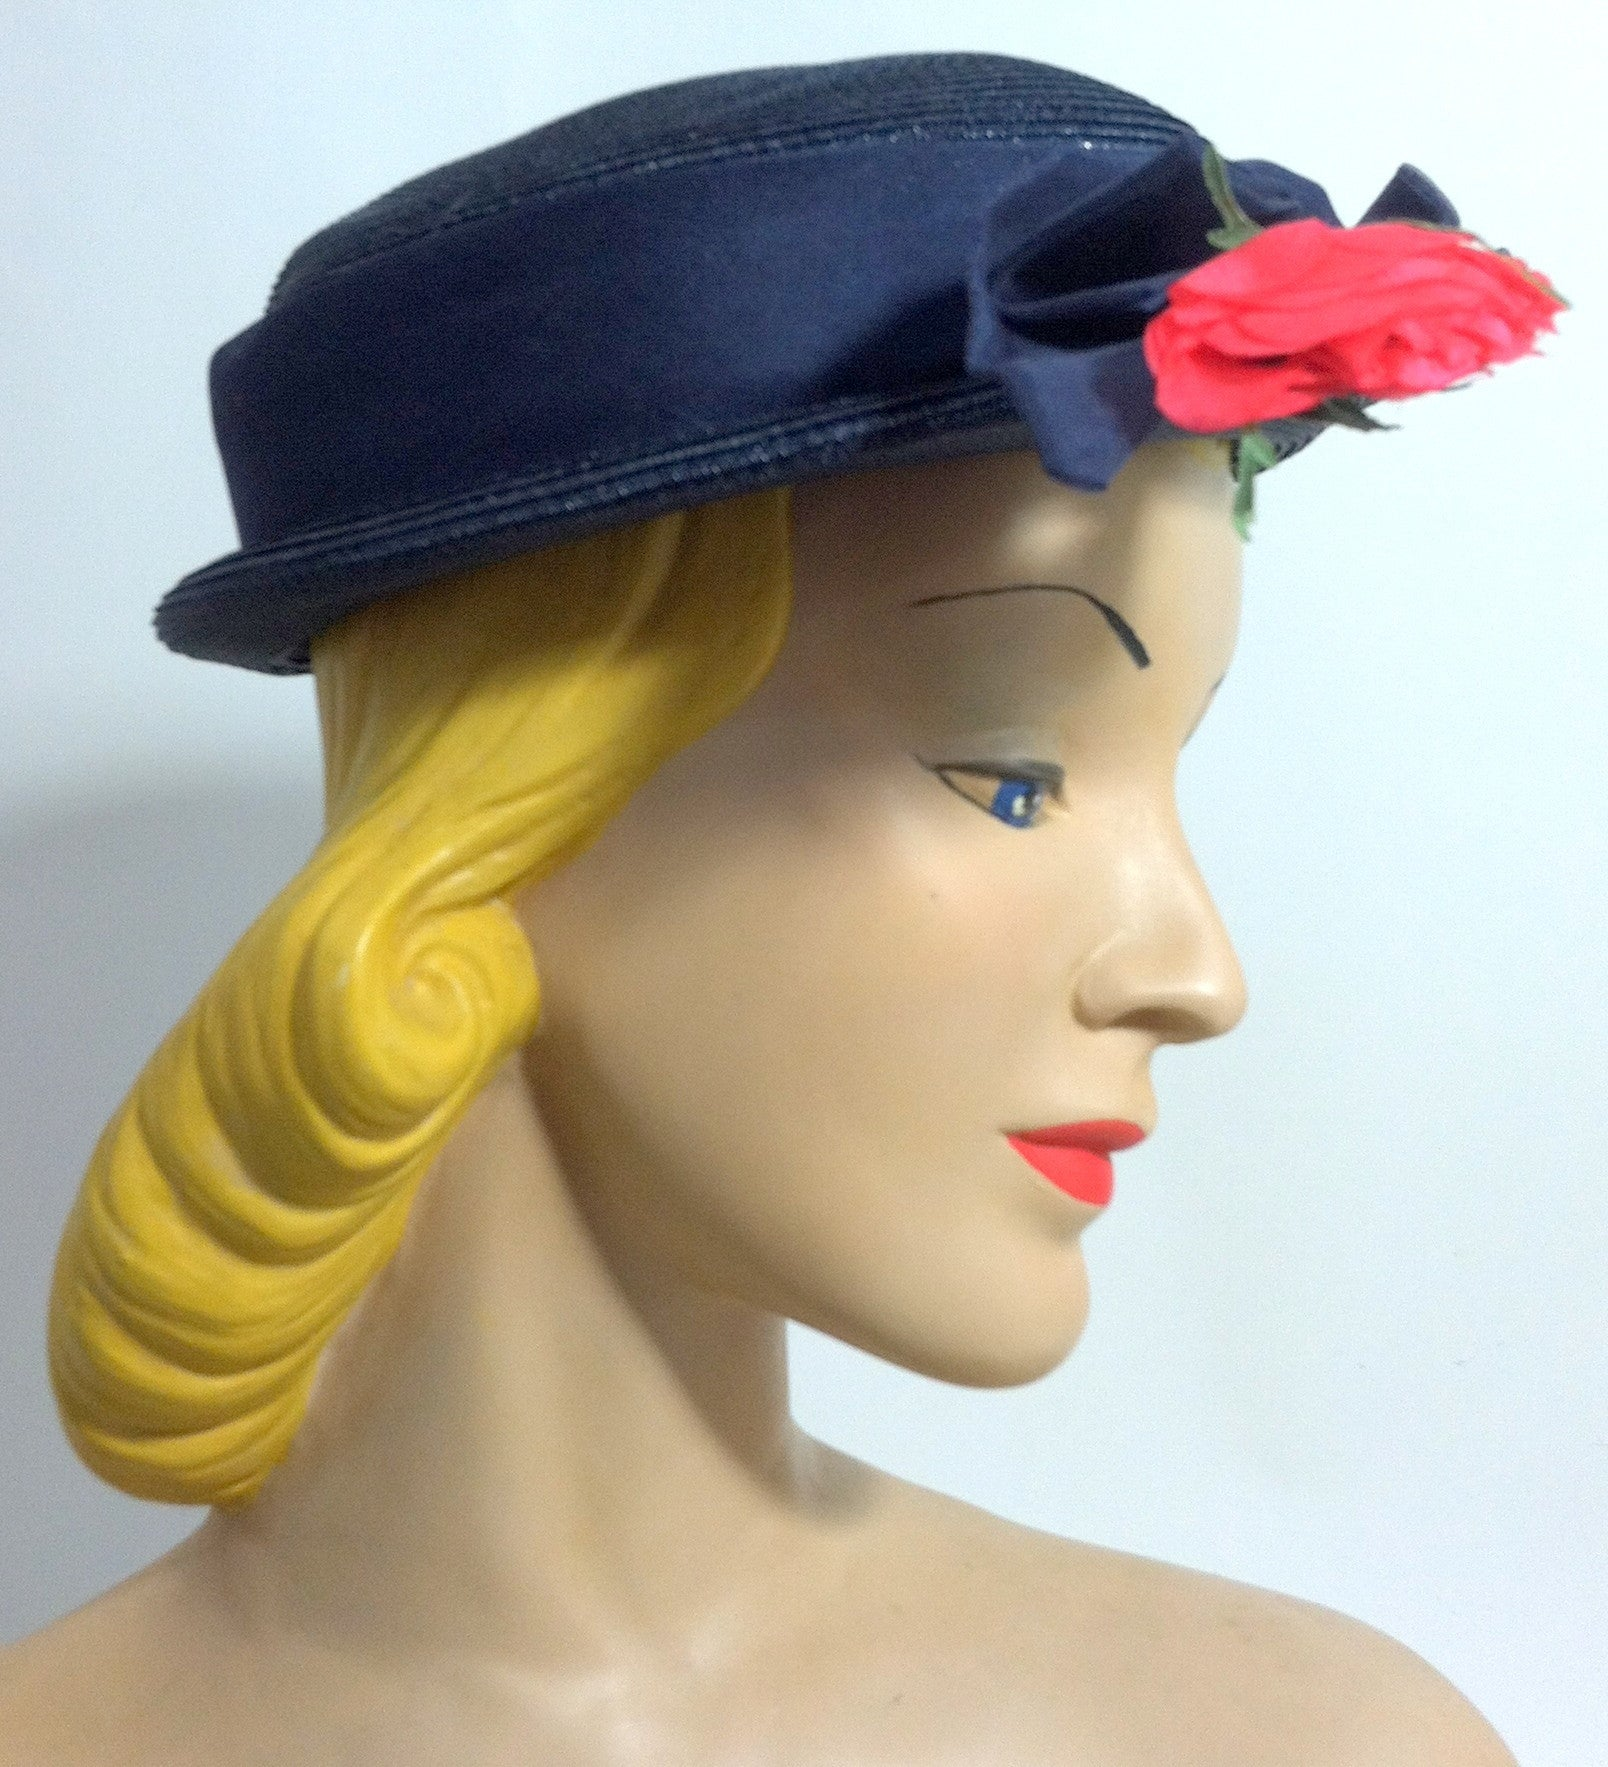 Perky Blue Sisal Short Crown Brimmed Hat w/ Red Rose circa 1950s Dorothea's Closet Vintage Hat